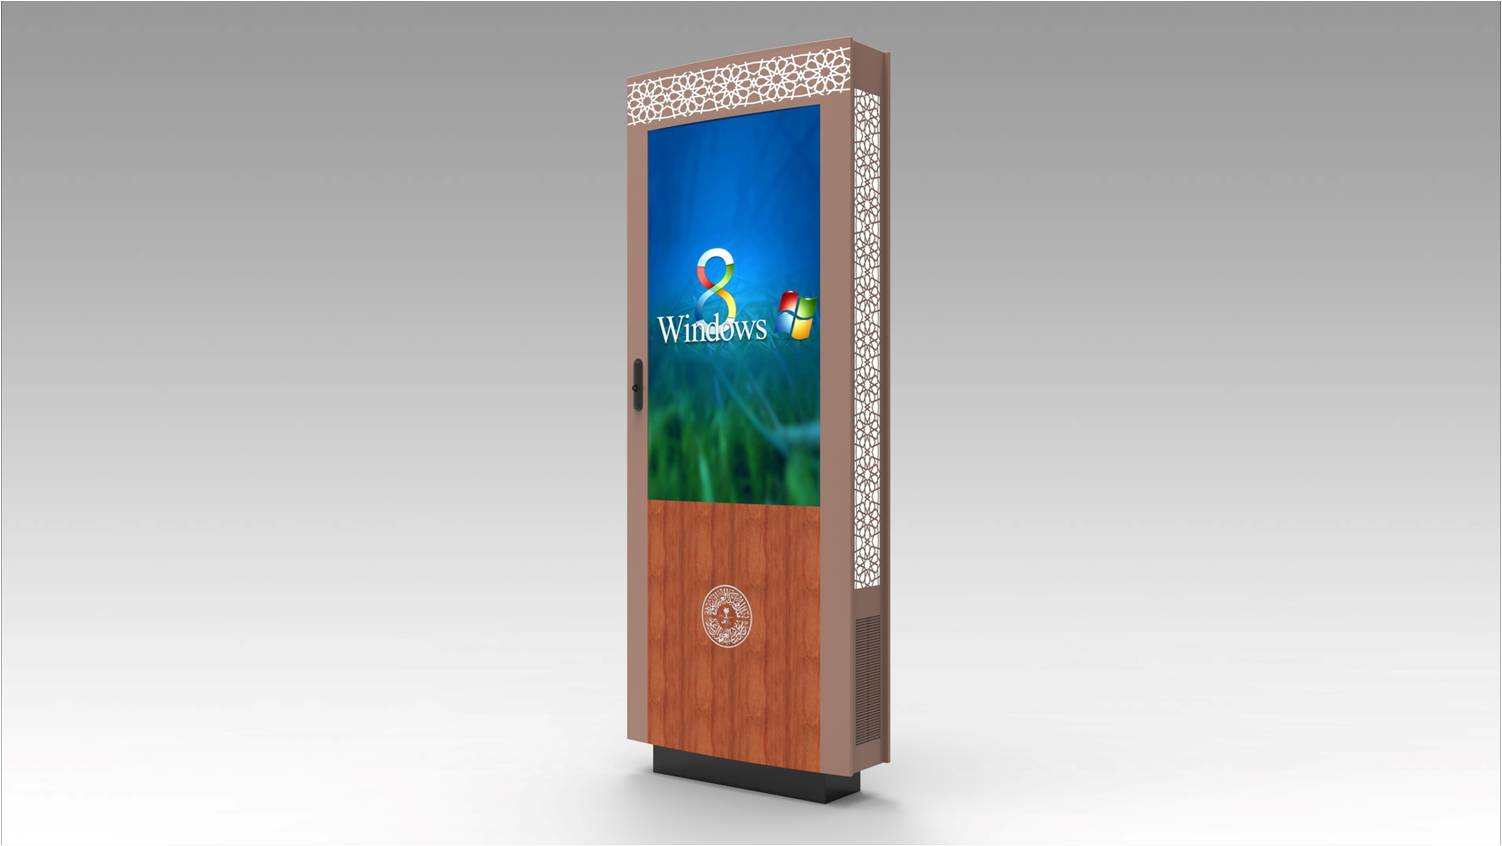 55 waterproof outdoor media player screen Boards Advertising Systems